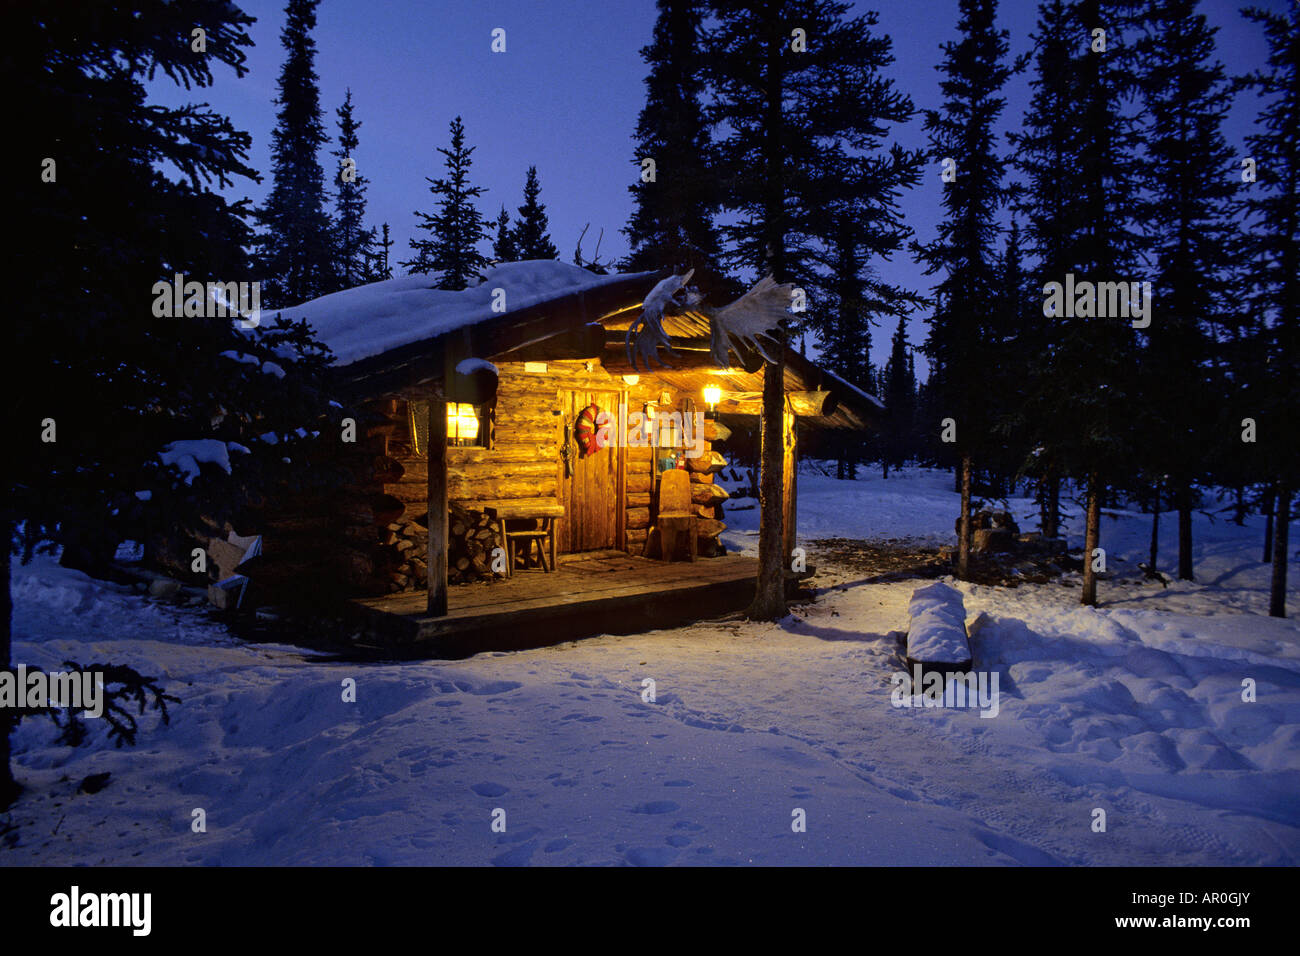 Interior Alaska Log Cabin Forest Winter Porch Light Snow